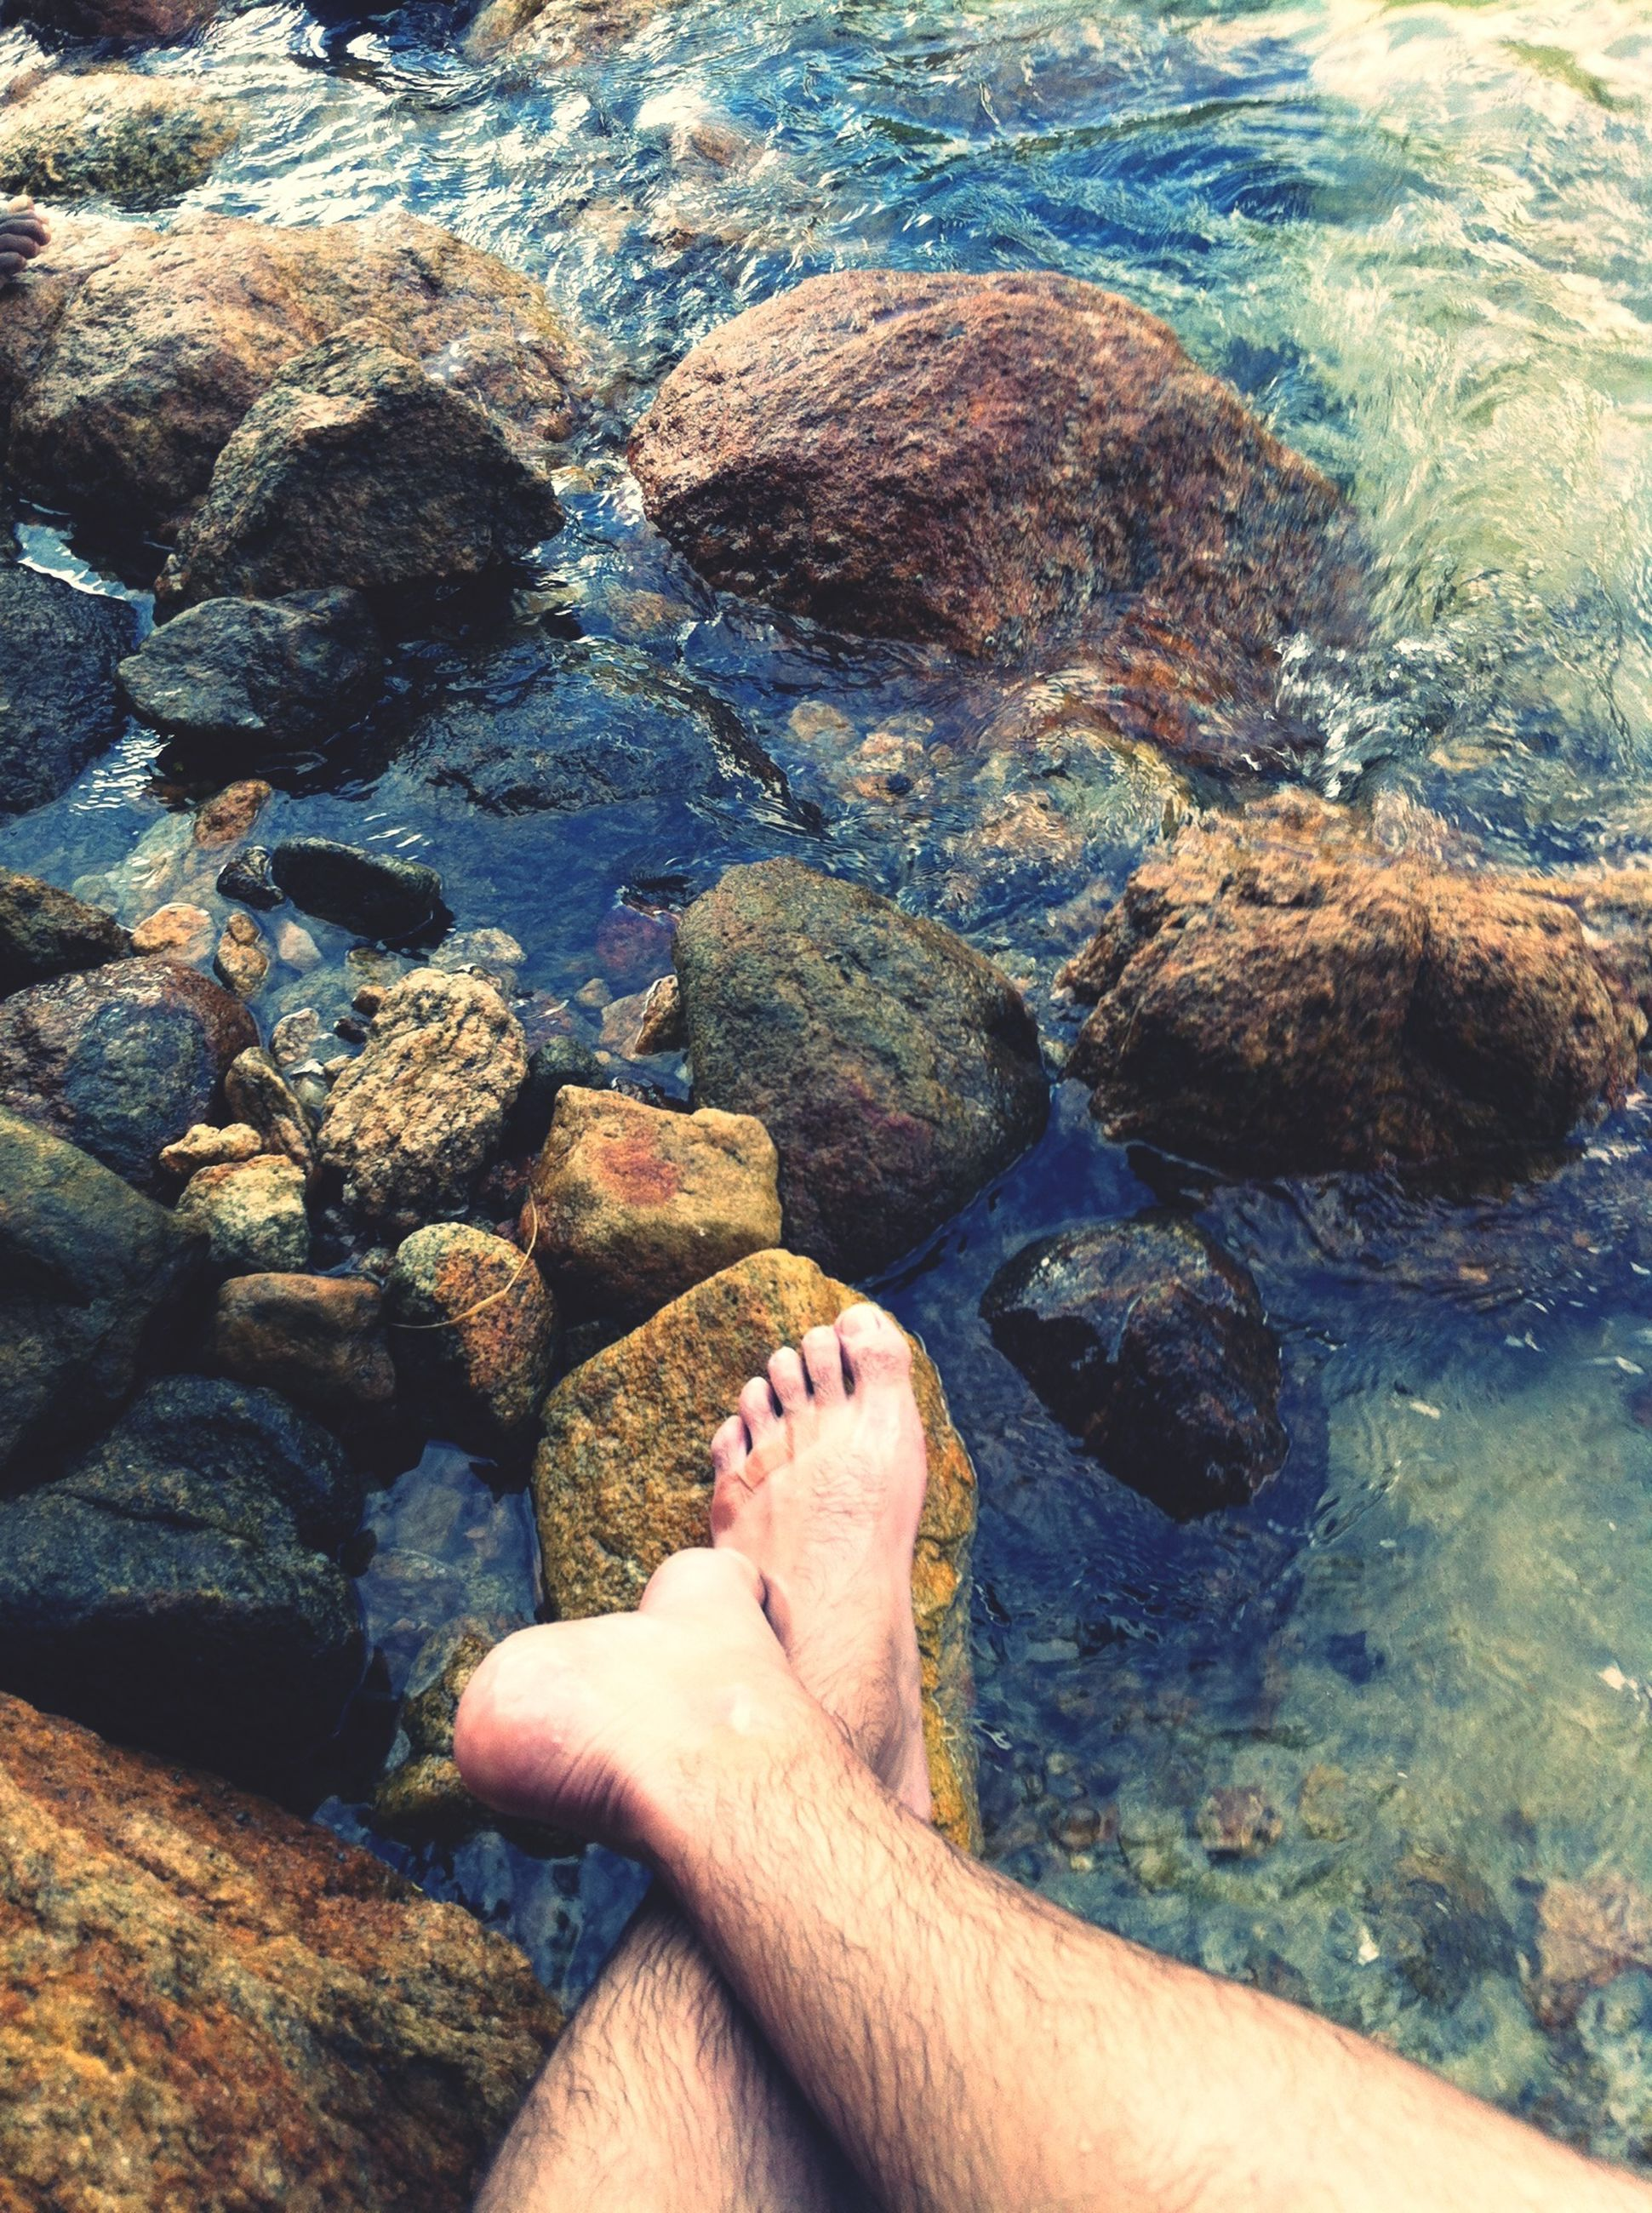 water, low section, person, personal perspective, barefoot, human foot, sea, lifestyles, high angle view, leisure activity, rock - object, relaxation, beach, resting, nature, shore